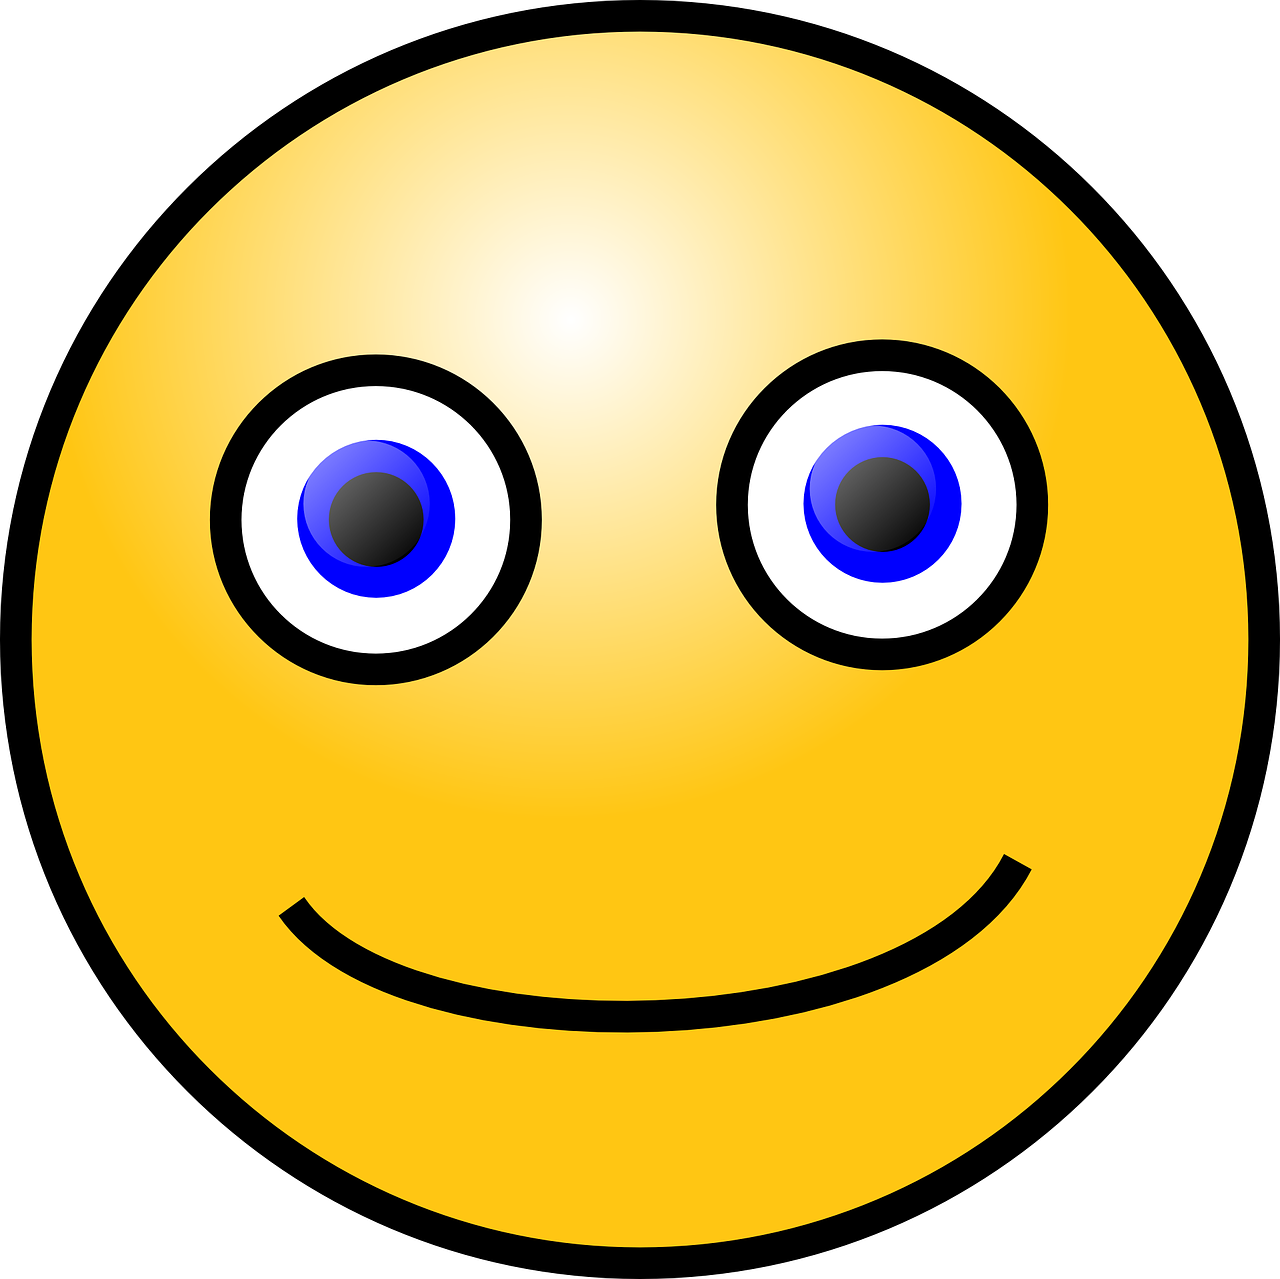 emoticon smile symbol free photo